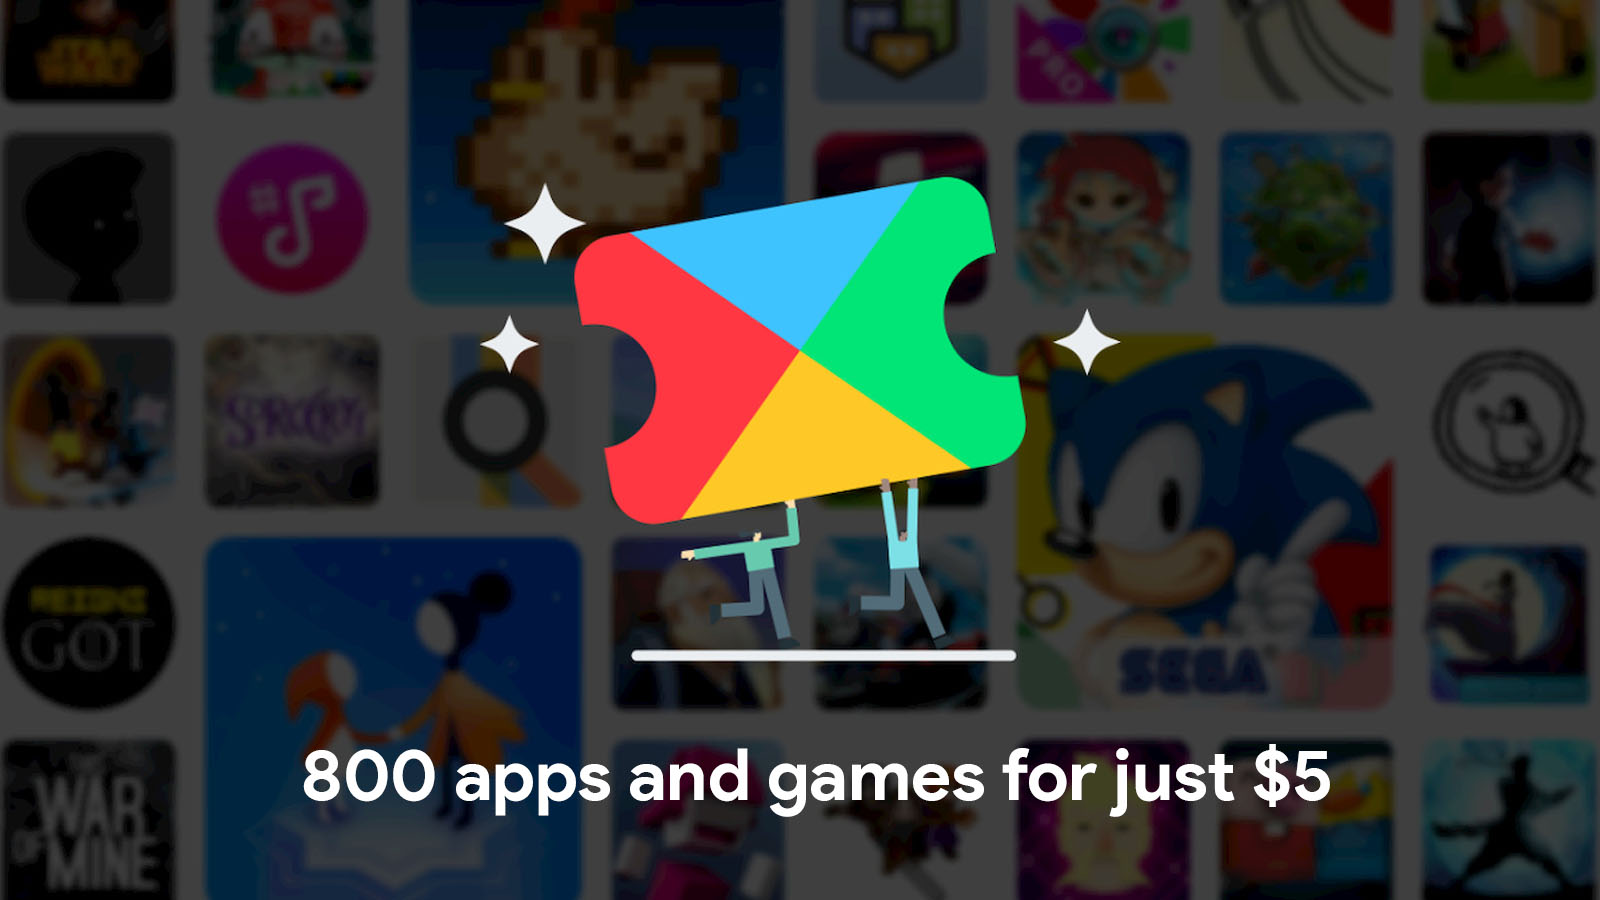 Google Play Pass now boasts over 800 games and apps for just $5 per month